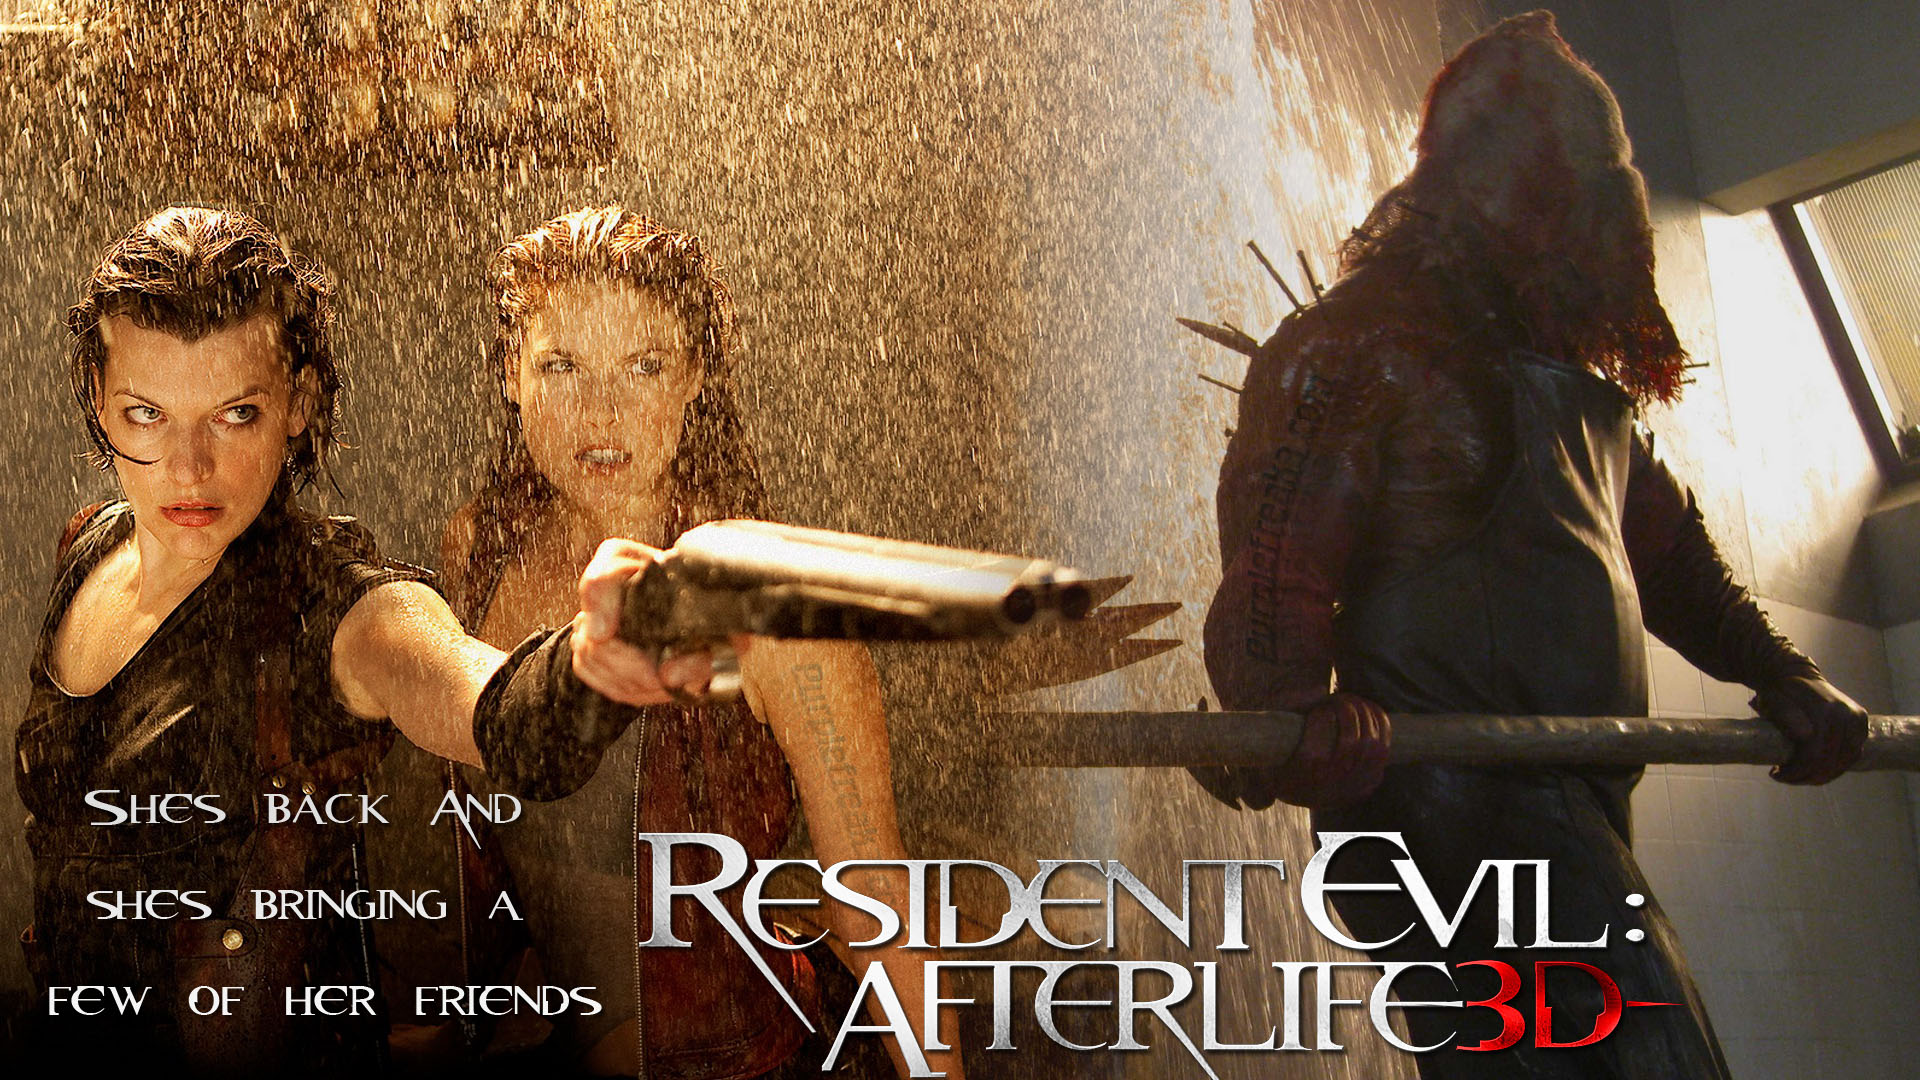 Resident Evil Afterlife HD Wallpaper